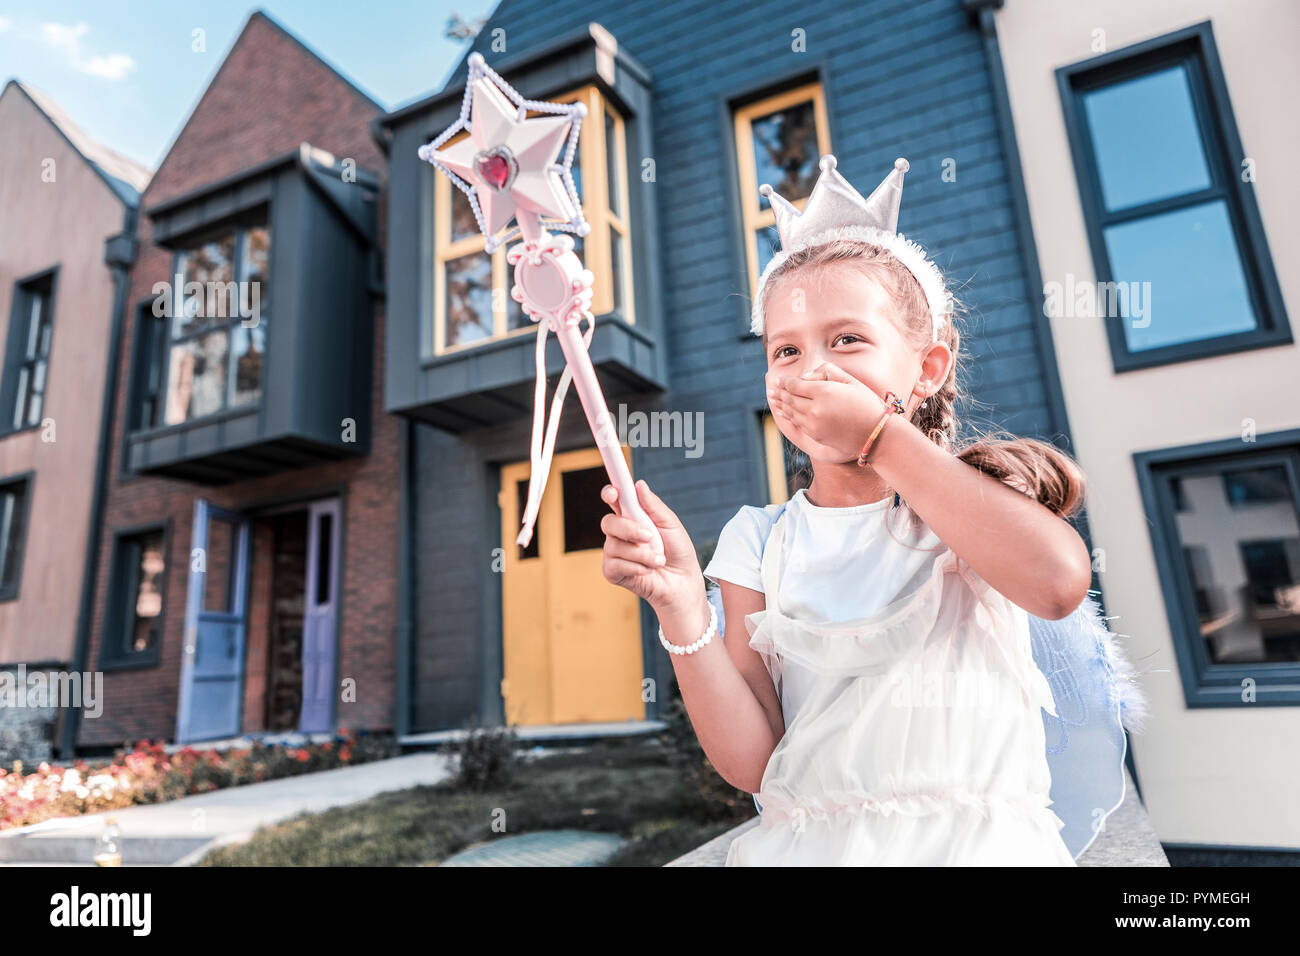 Beautiful girl wearing crown and holding magic wand feeling emotional - Stock Image